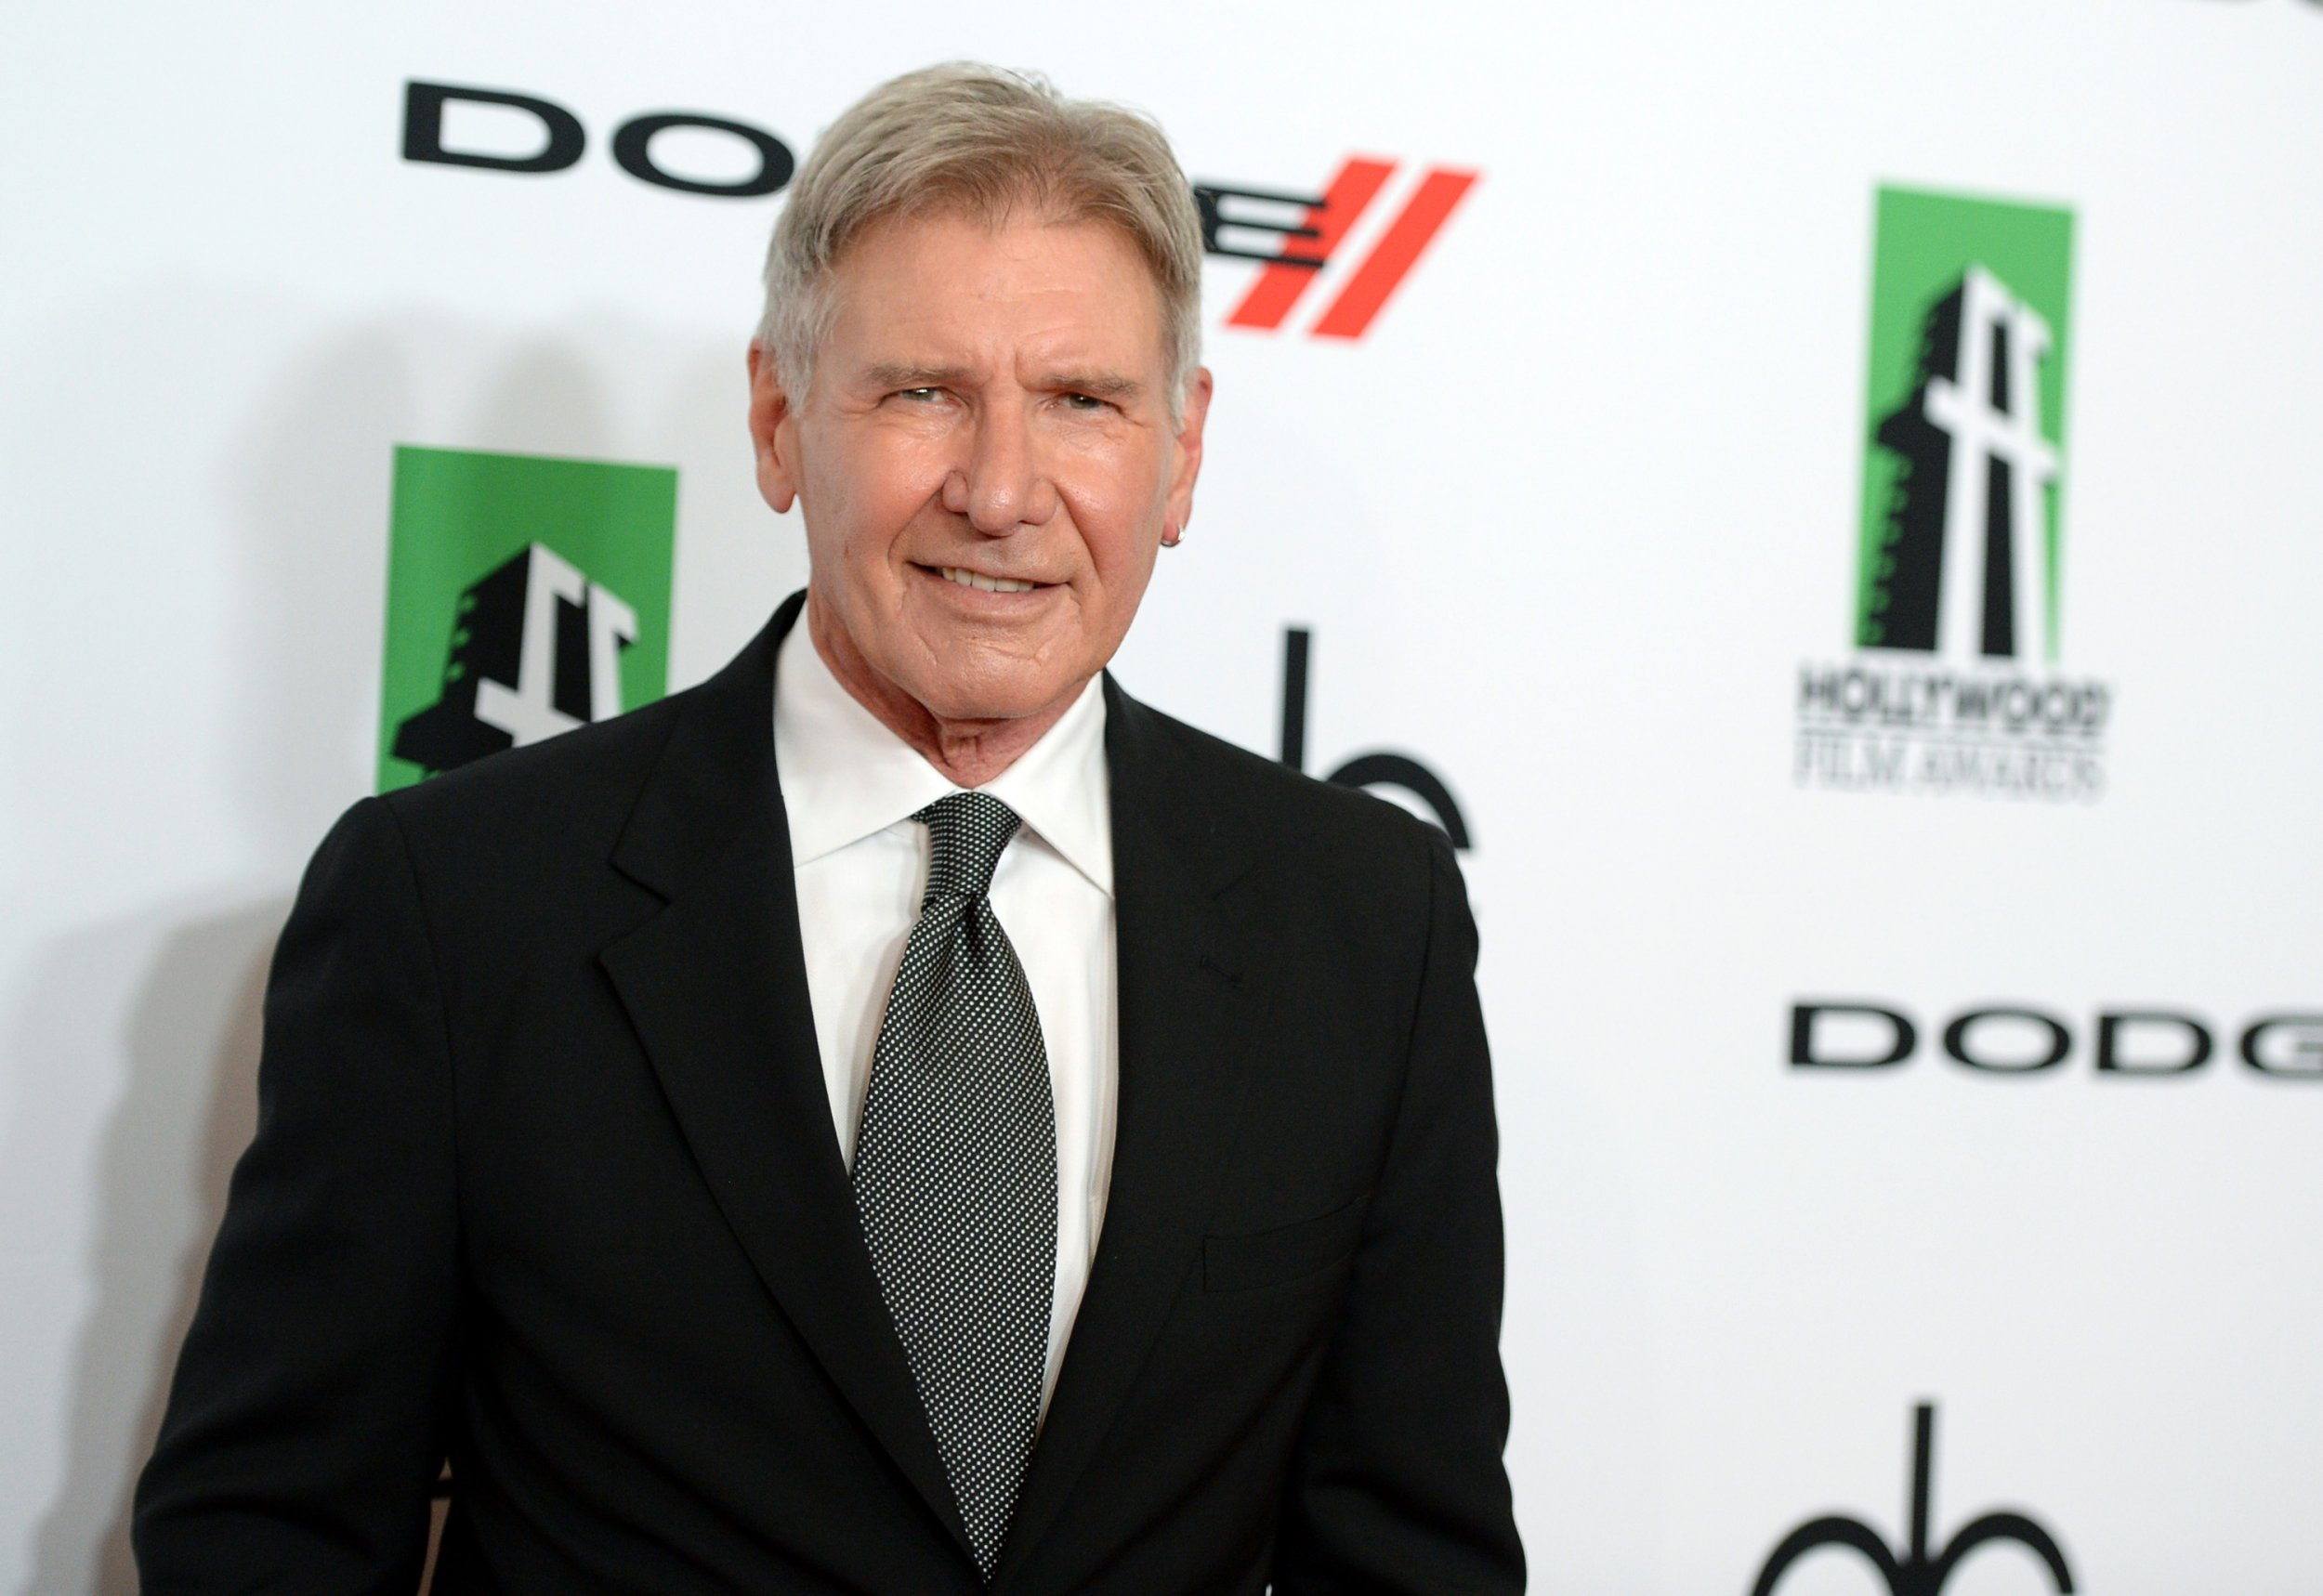 Harrison Ford at Hollywood Film Awards